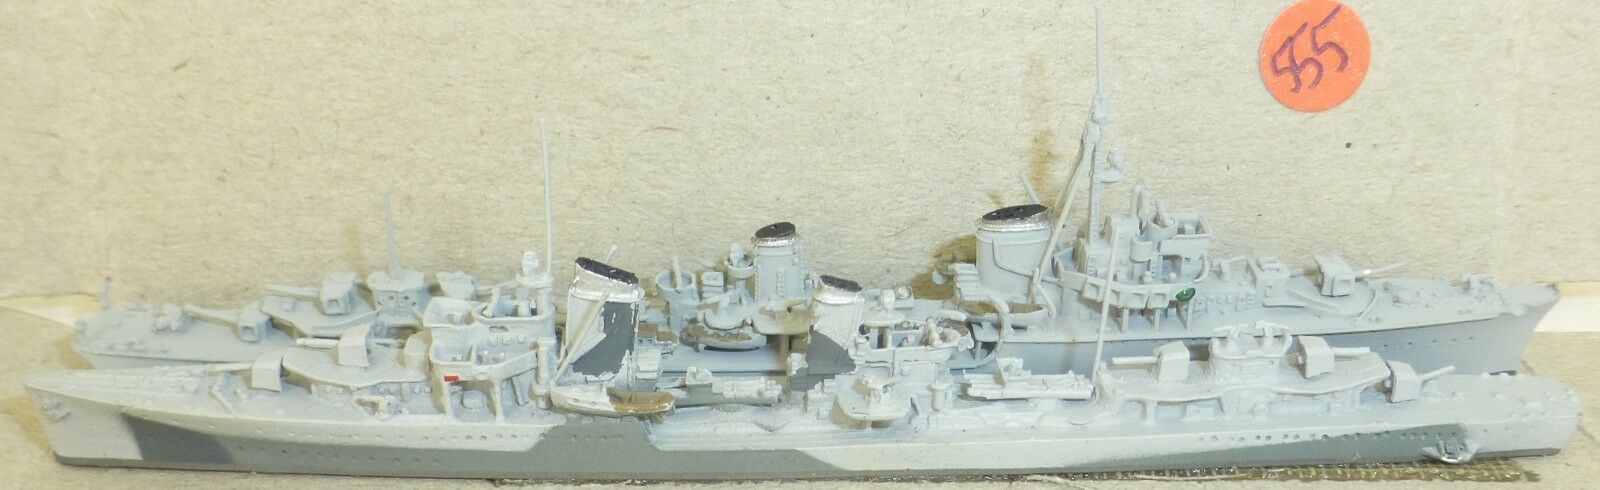 2 Destroyer neptun1062 +1084 z9-13 +Z25 1942 Ship Model 1 1250 SHP555 Å